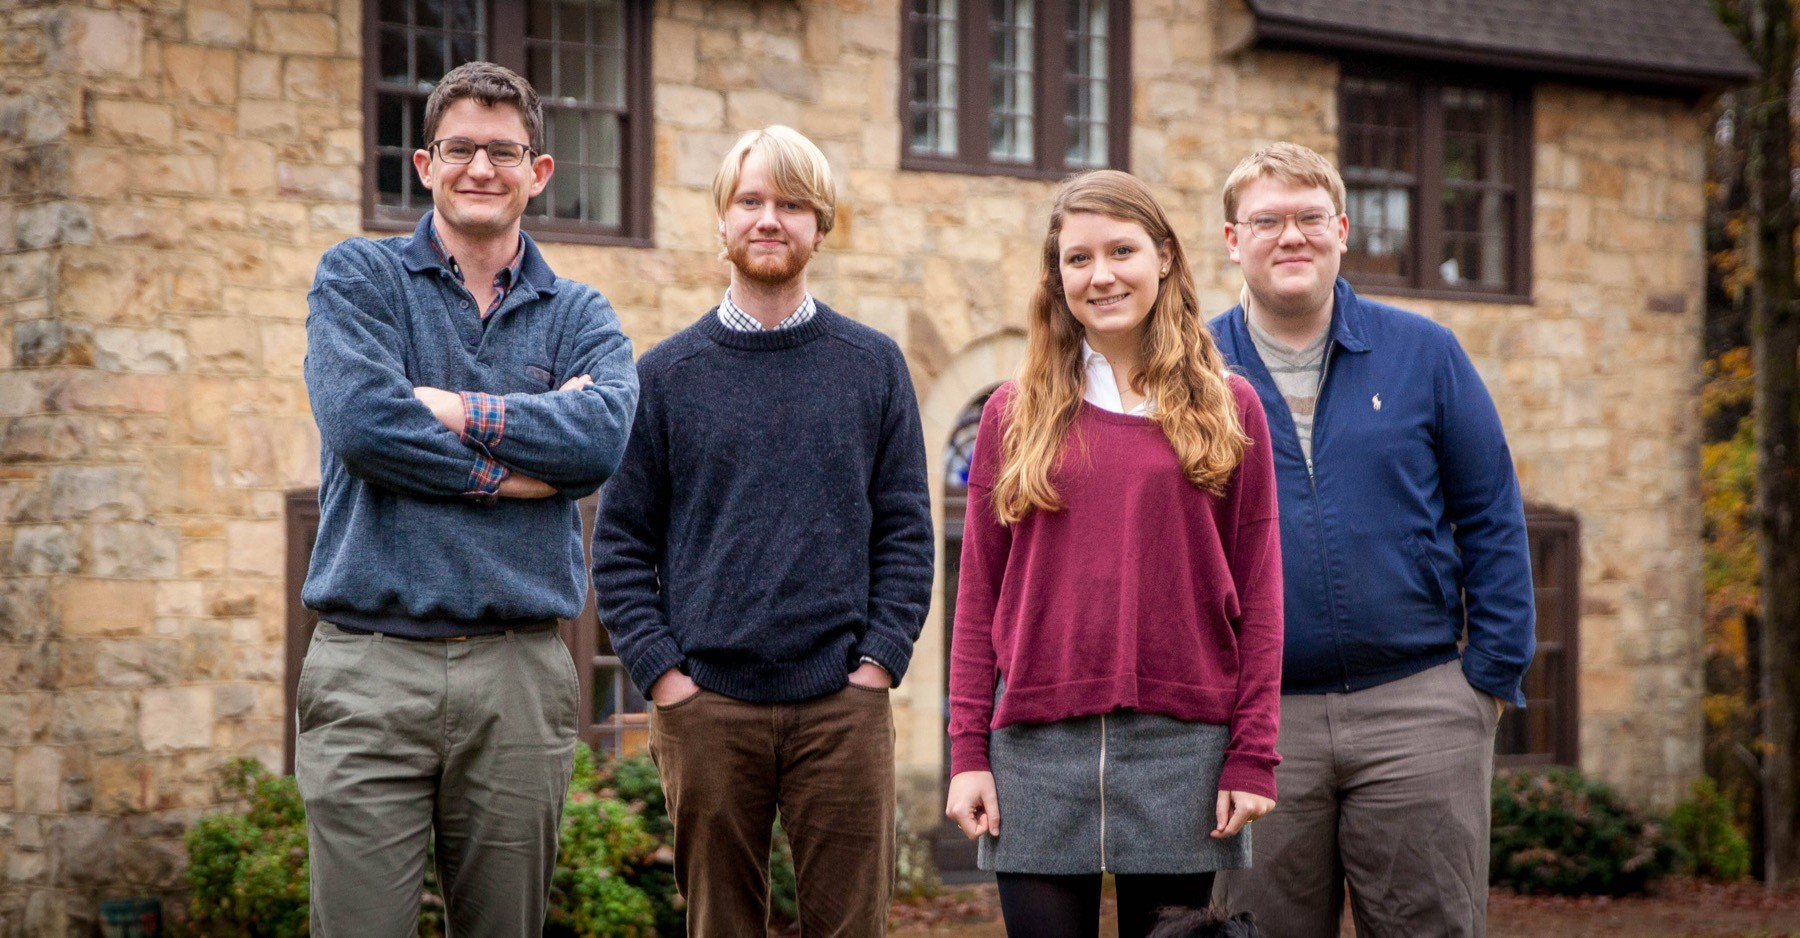 Left to right: Managing Editor Alec Hill, C'16, with Editorial Assistants Walt Evans, Annie Adams, and Spencer Hupp, all C'17.